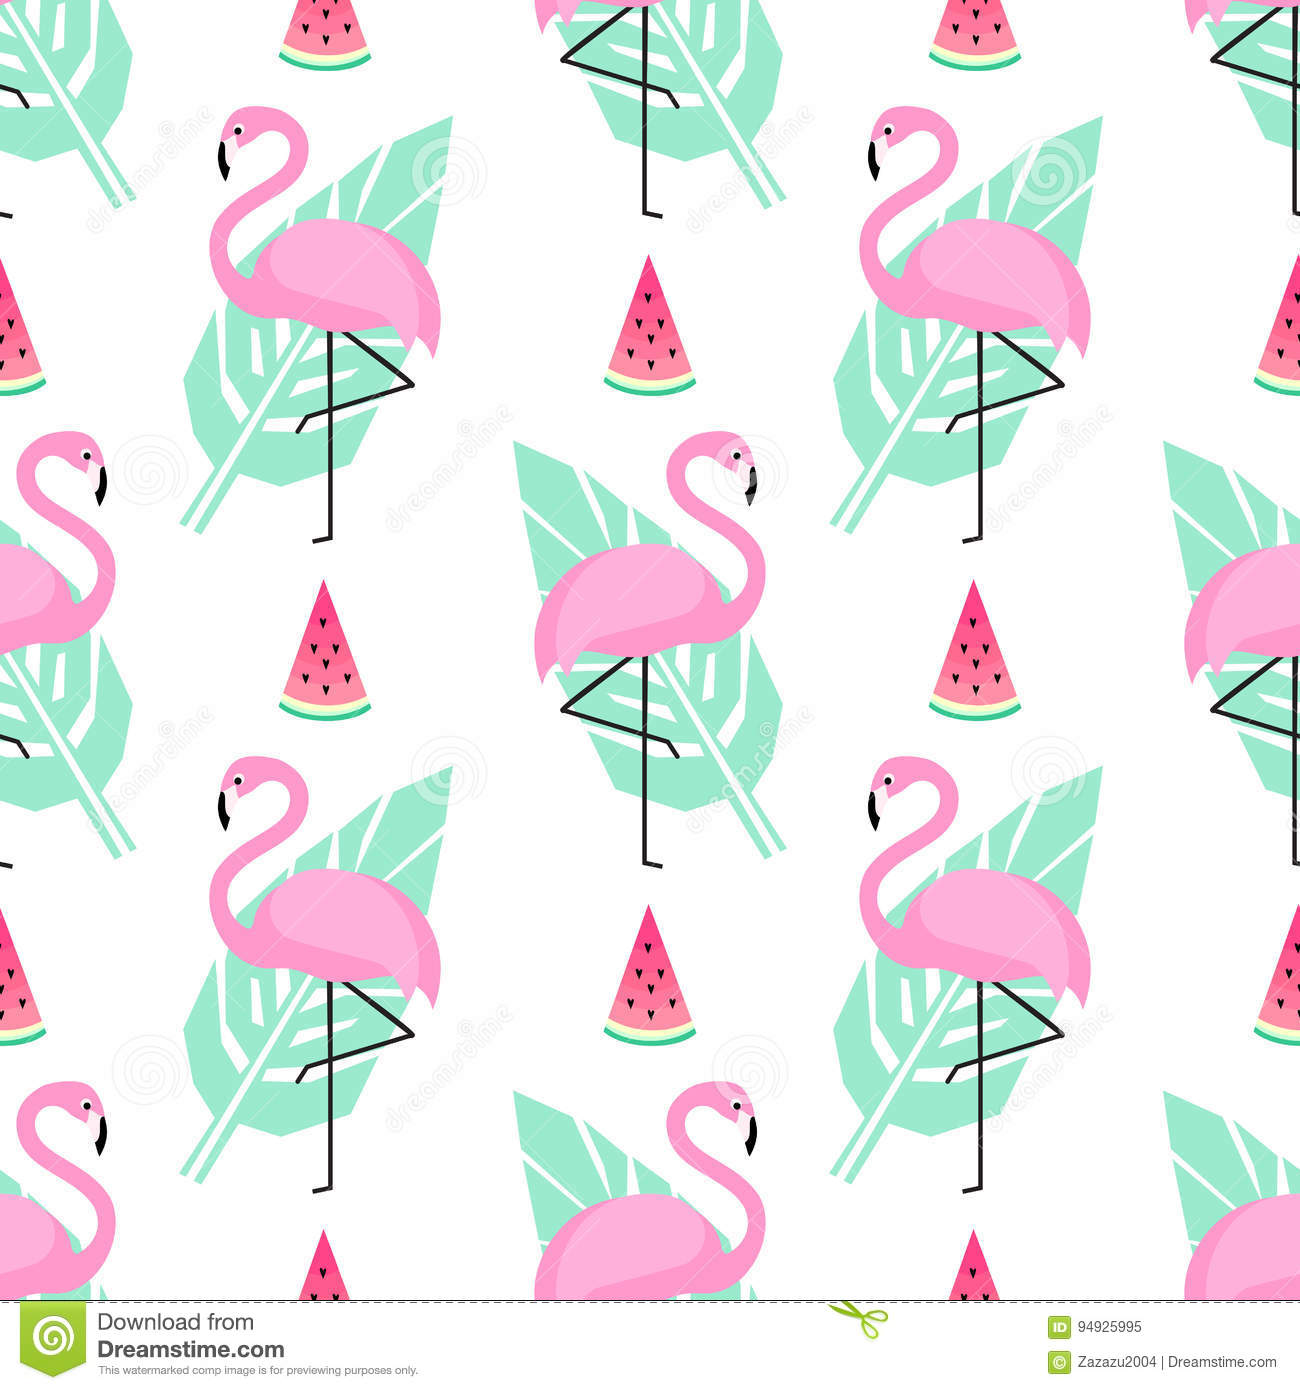 Tropical Trendy Seamless Pattern With Pink Flamingos And